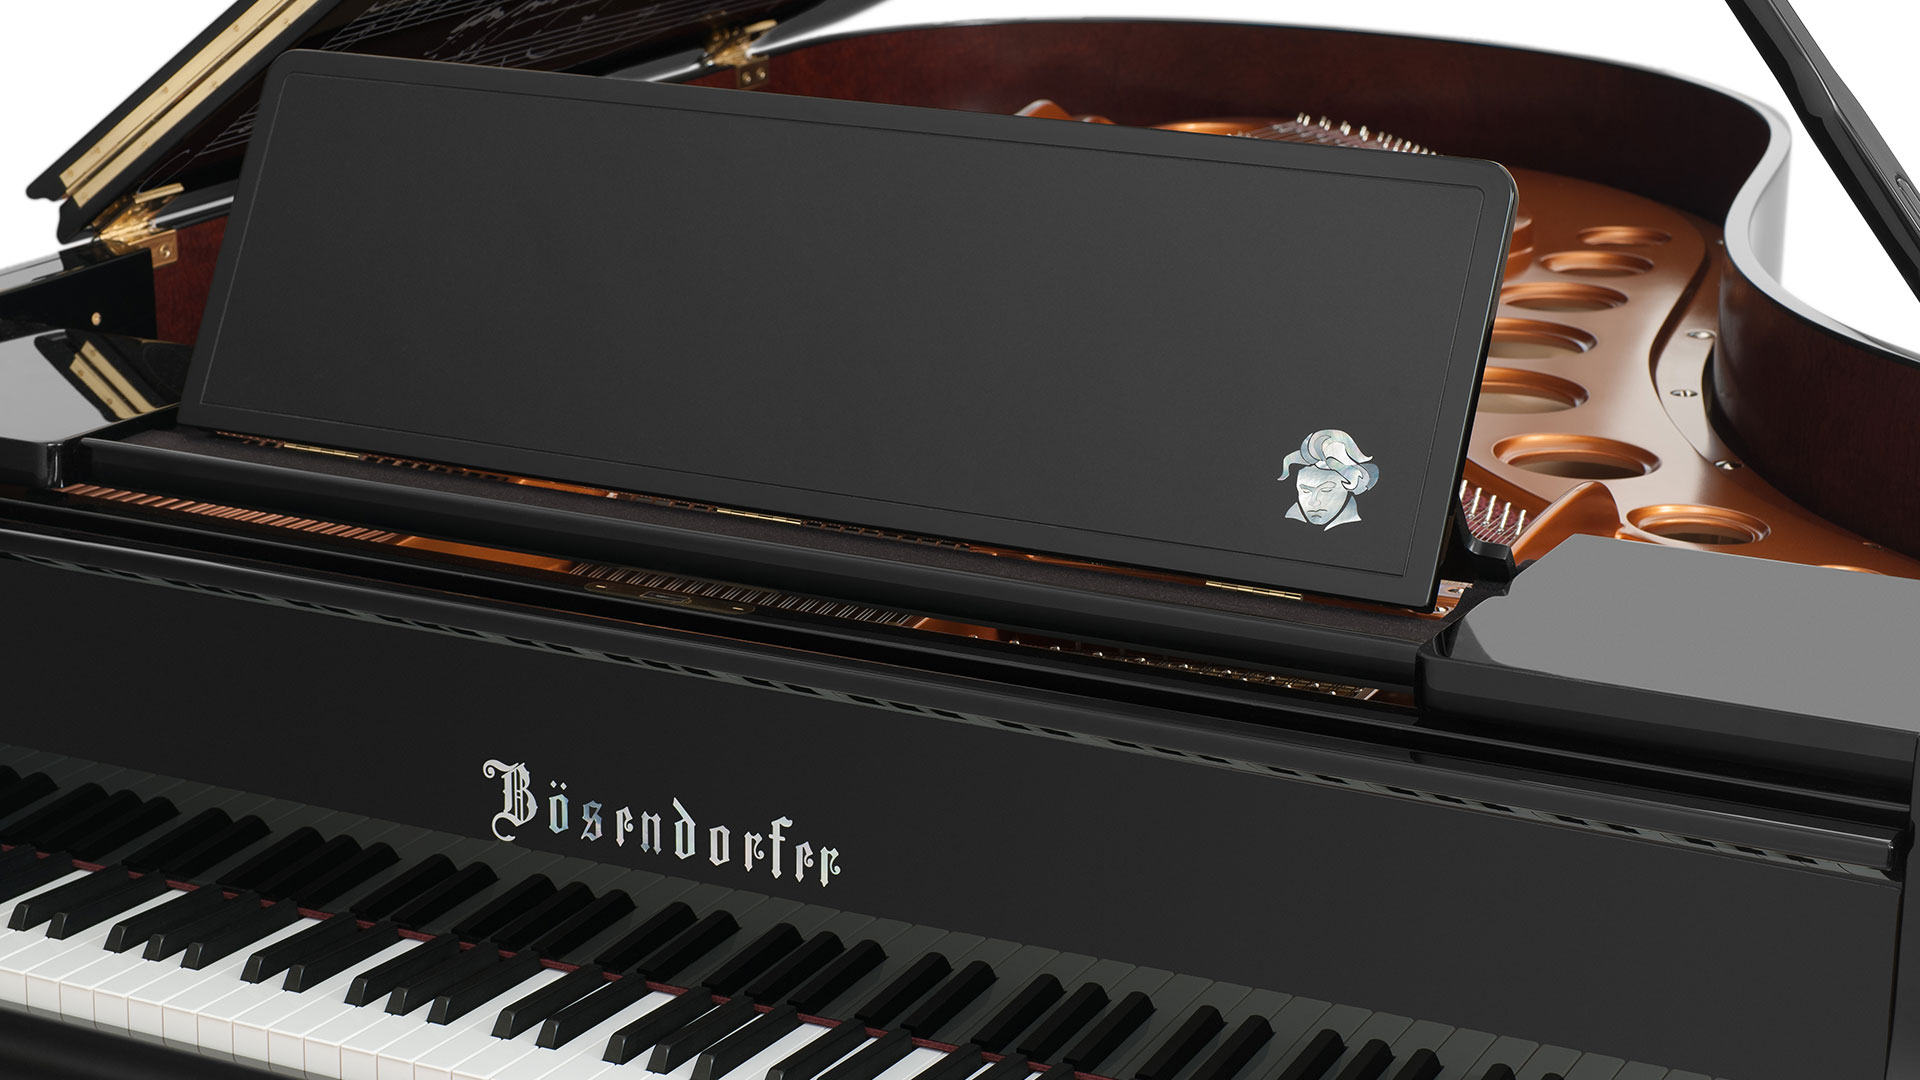 214 Bosendorfer Grand Piano